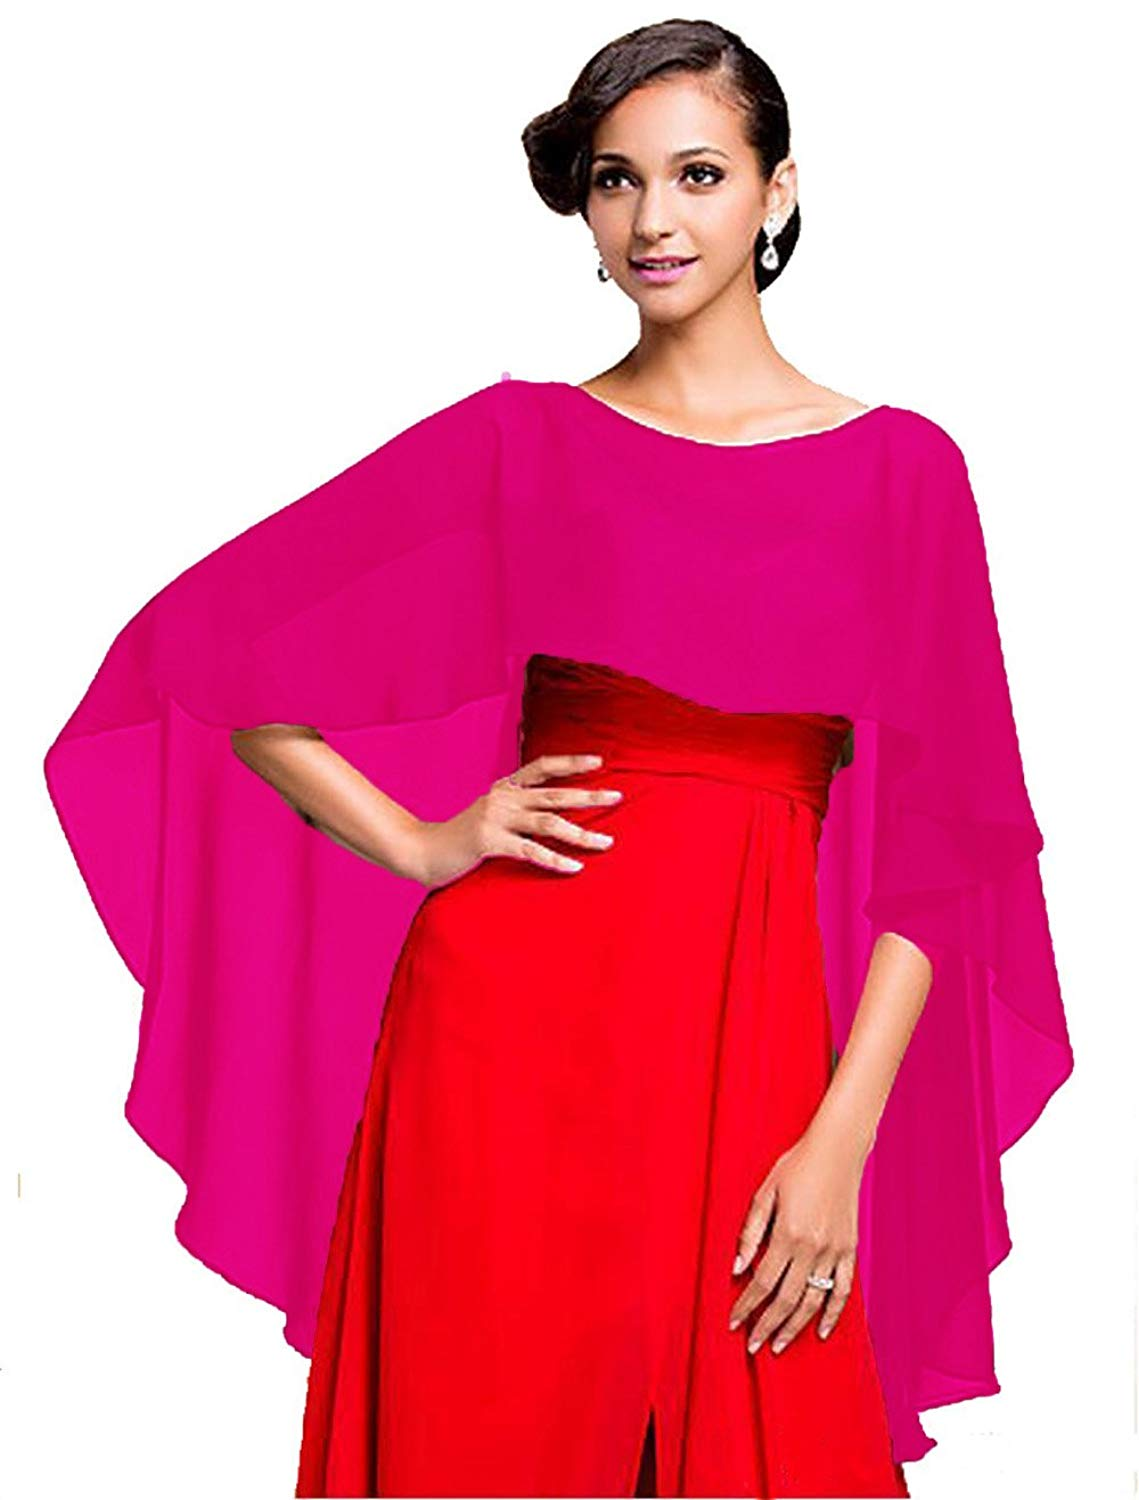 Cheap Womens Ponchos And Capes, find Womens Ponchos And Capes deals